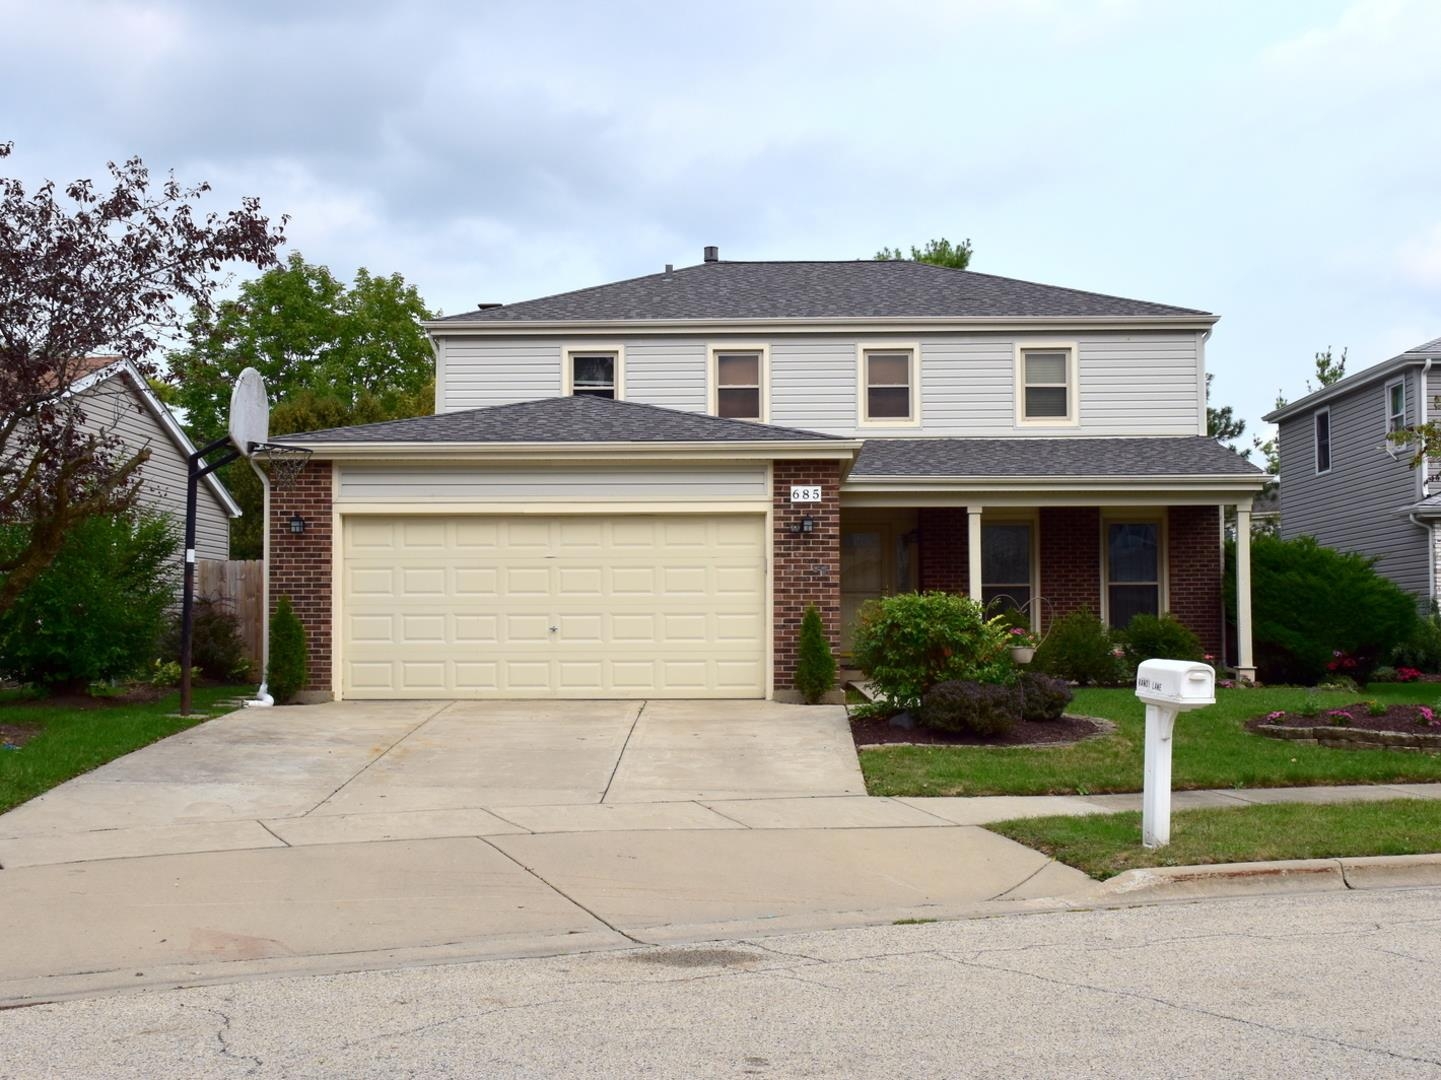 685 Randi Lane, Hoffman Estates, IL 60169 - #: 10862822